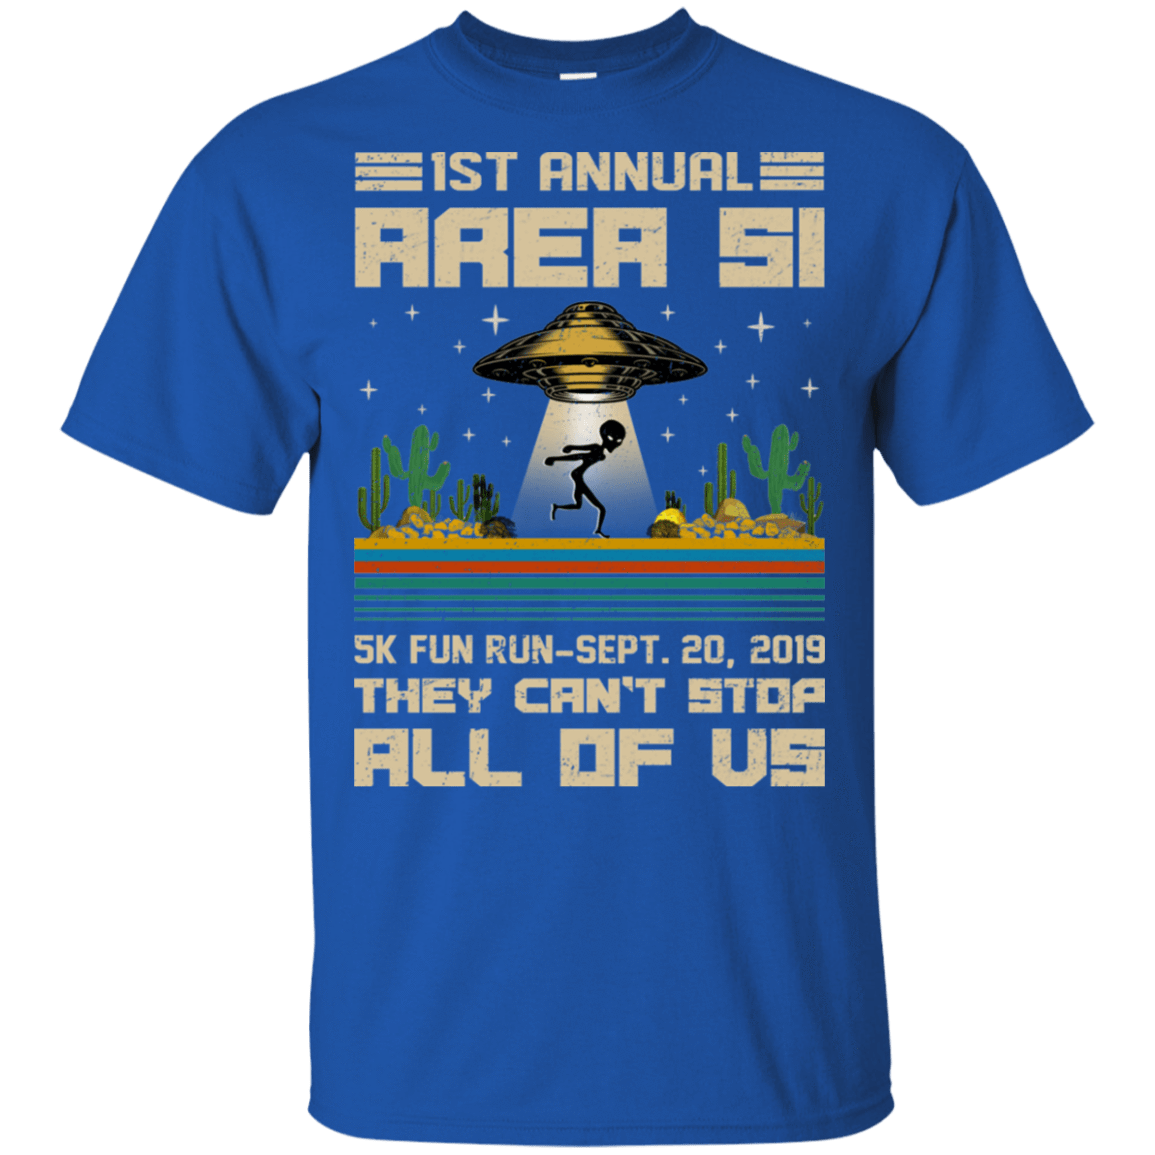 1ST Annual Area Si 5K Fun Run Sept 20 2019 T-Shirts, Hoodie, Tank 22-110-78498843-249 - Tee Ript